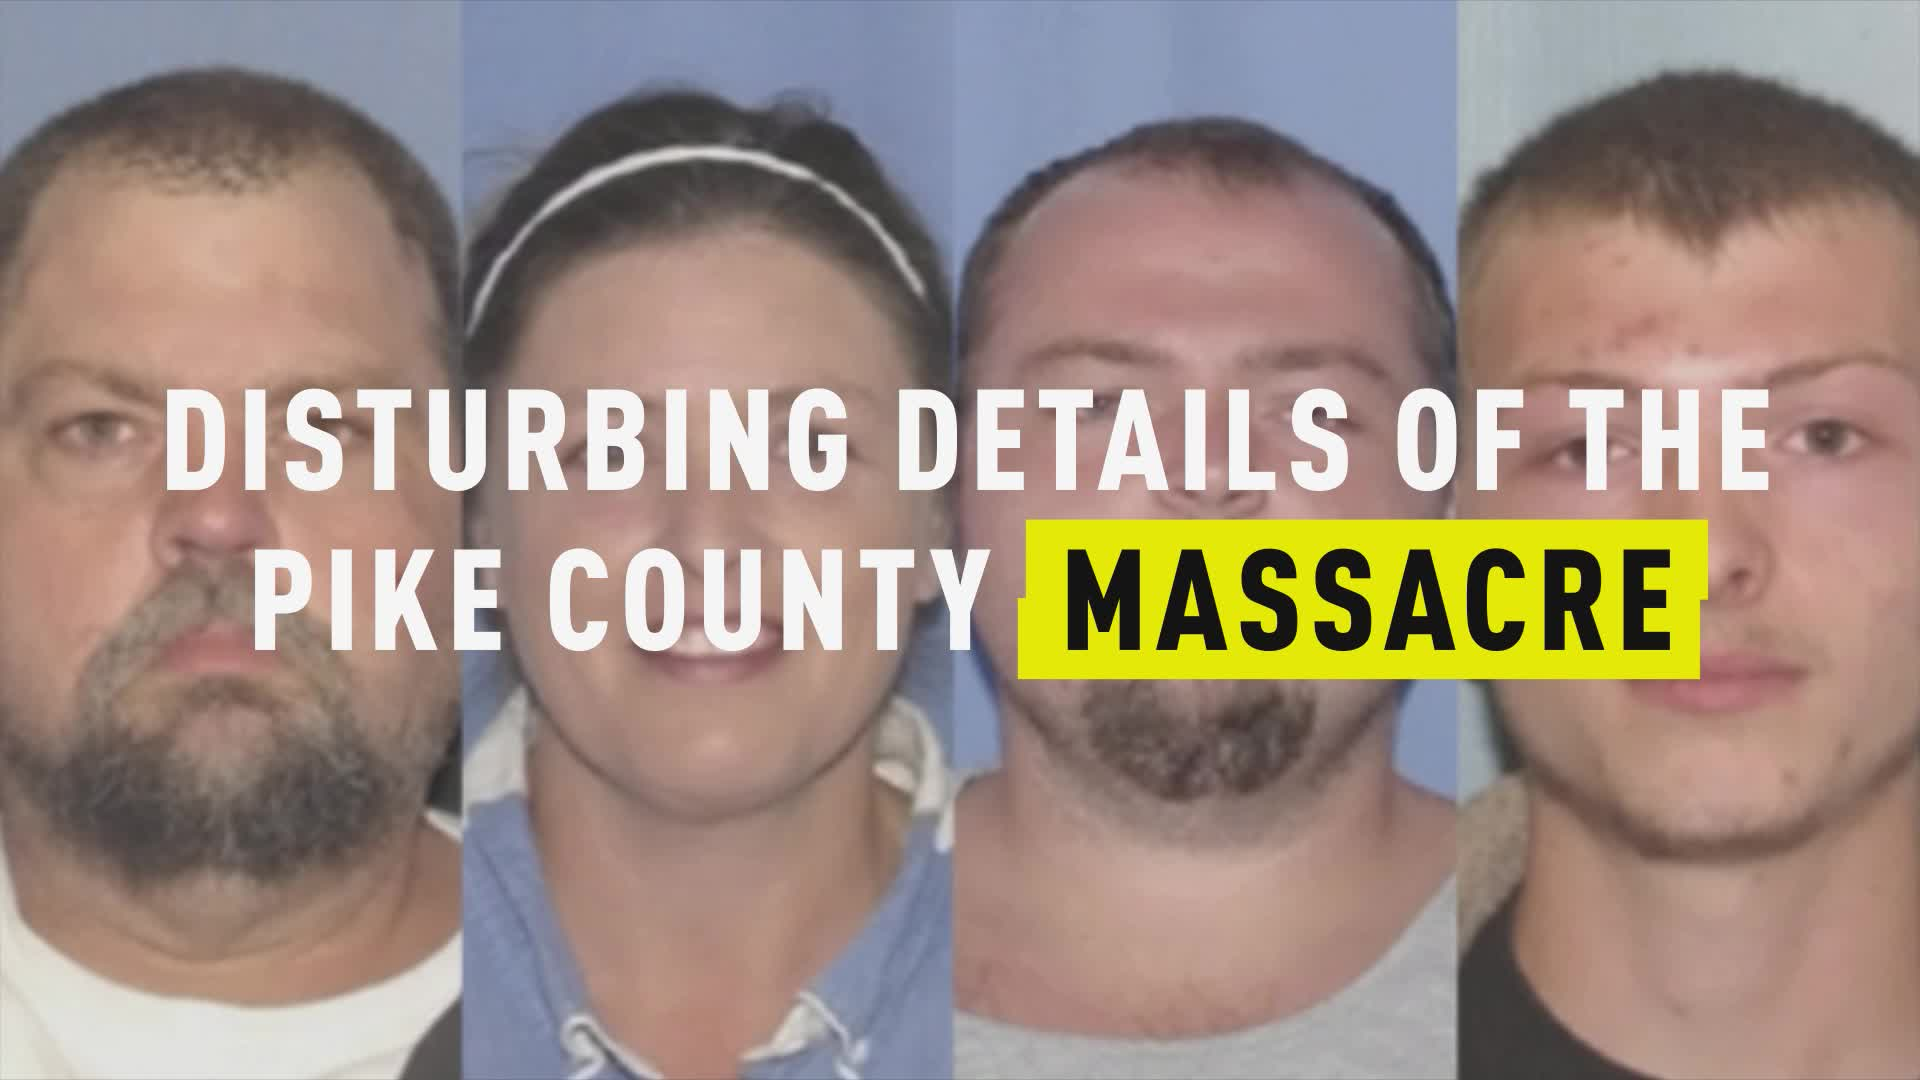 Disturbing Details of the Pike County Massacre